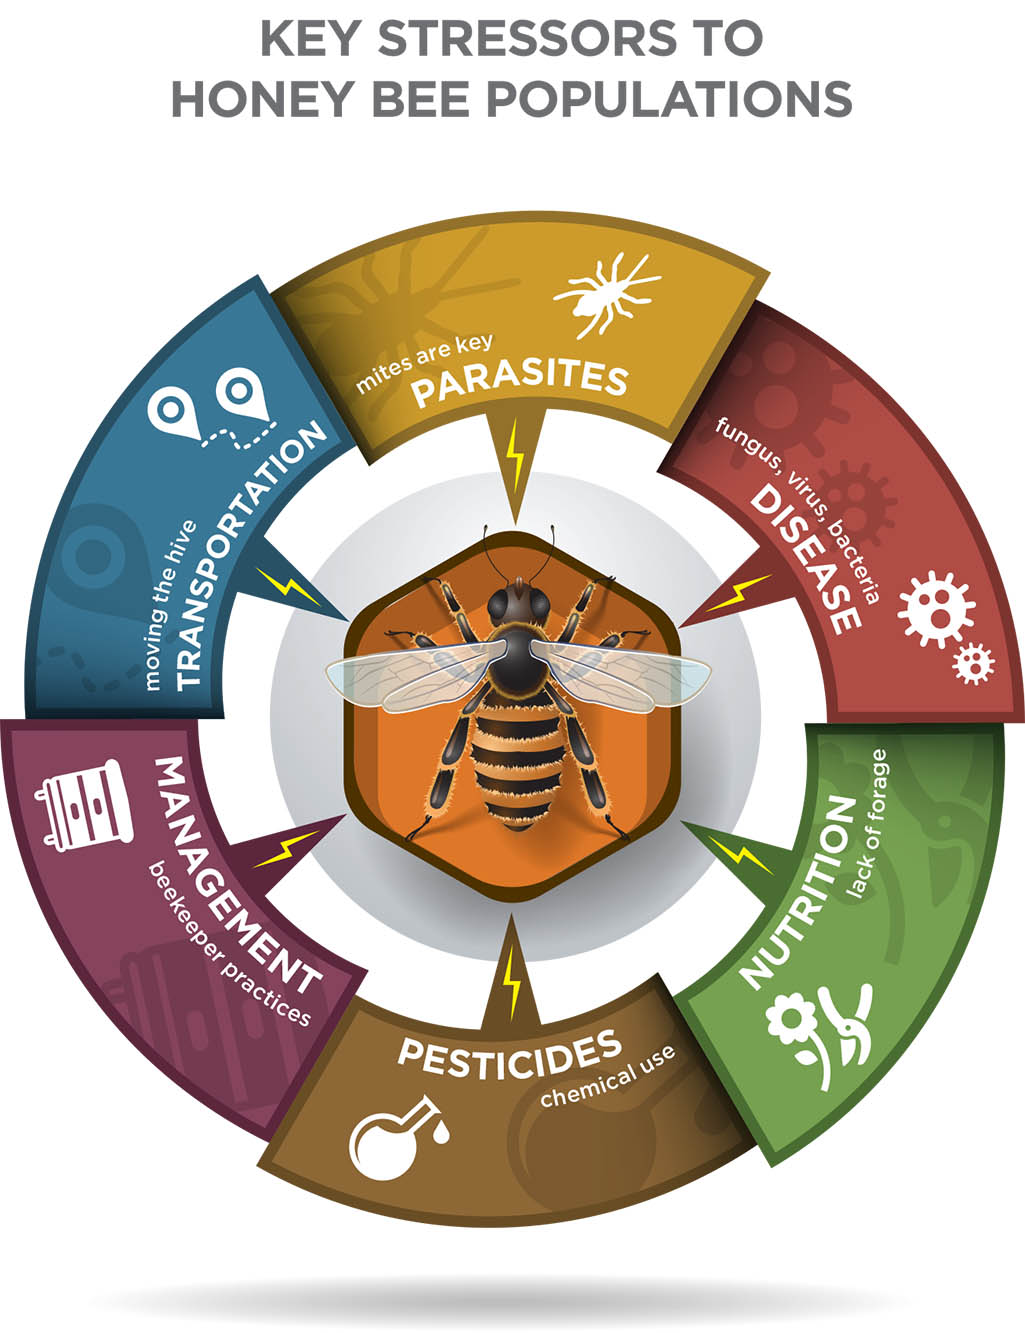 The complex life of the honey bee purdue pesticide programs key stressors to honey bee populations xflitez Images